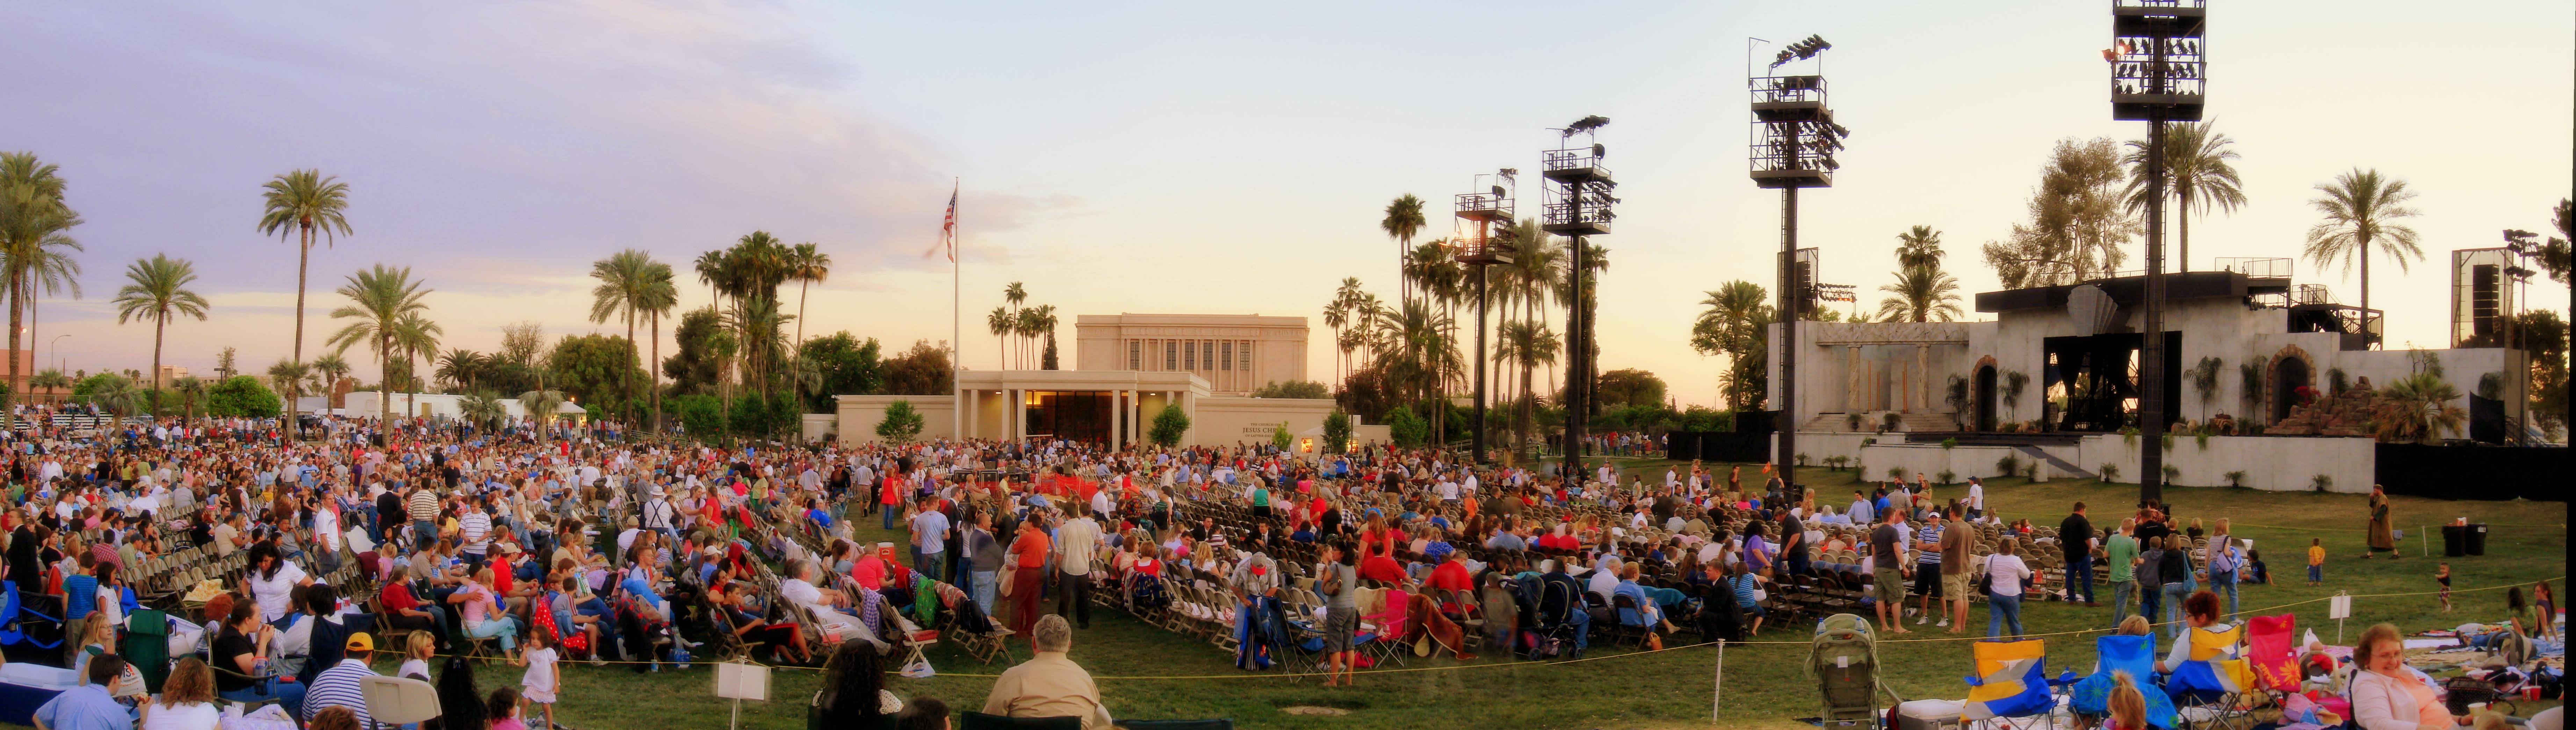 English: Panoramic view of the Mesa Easter Pageant